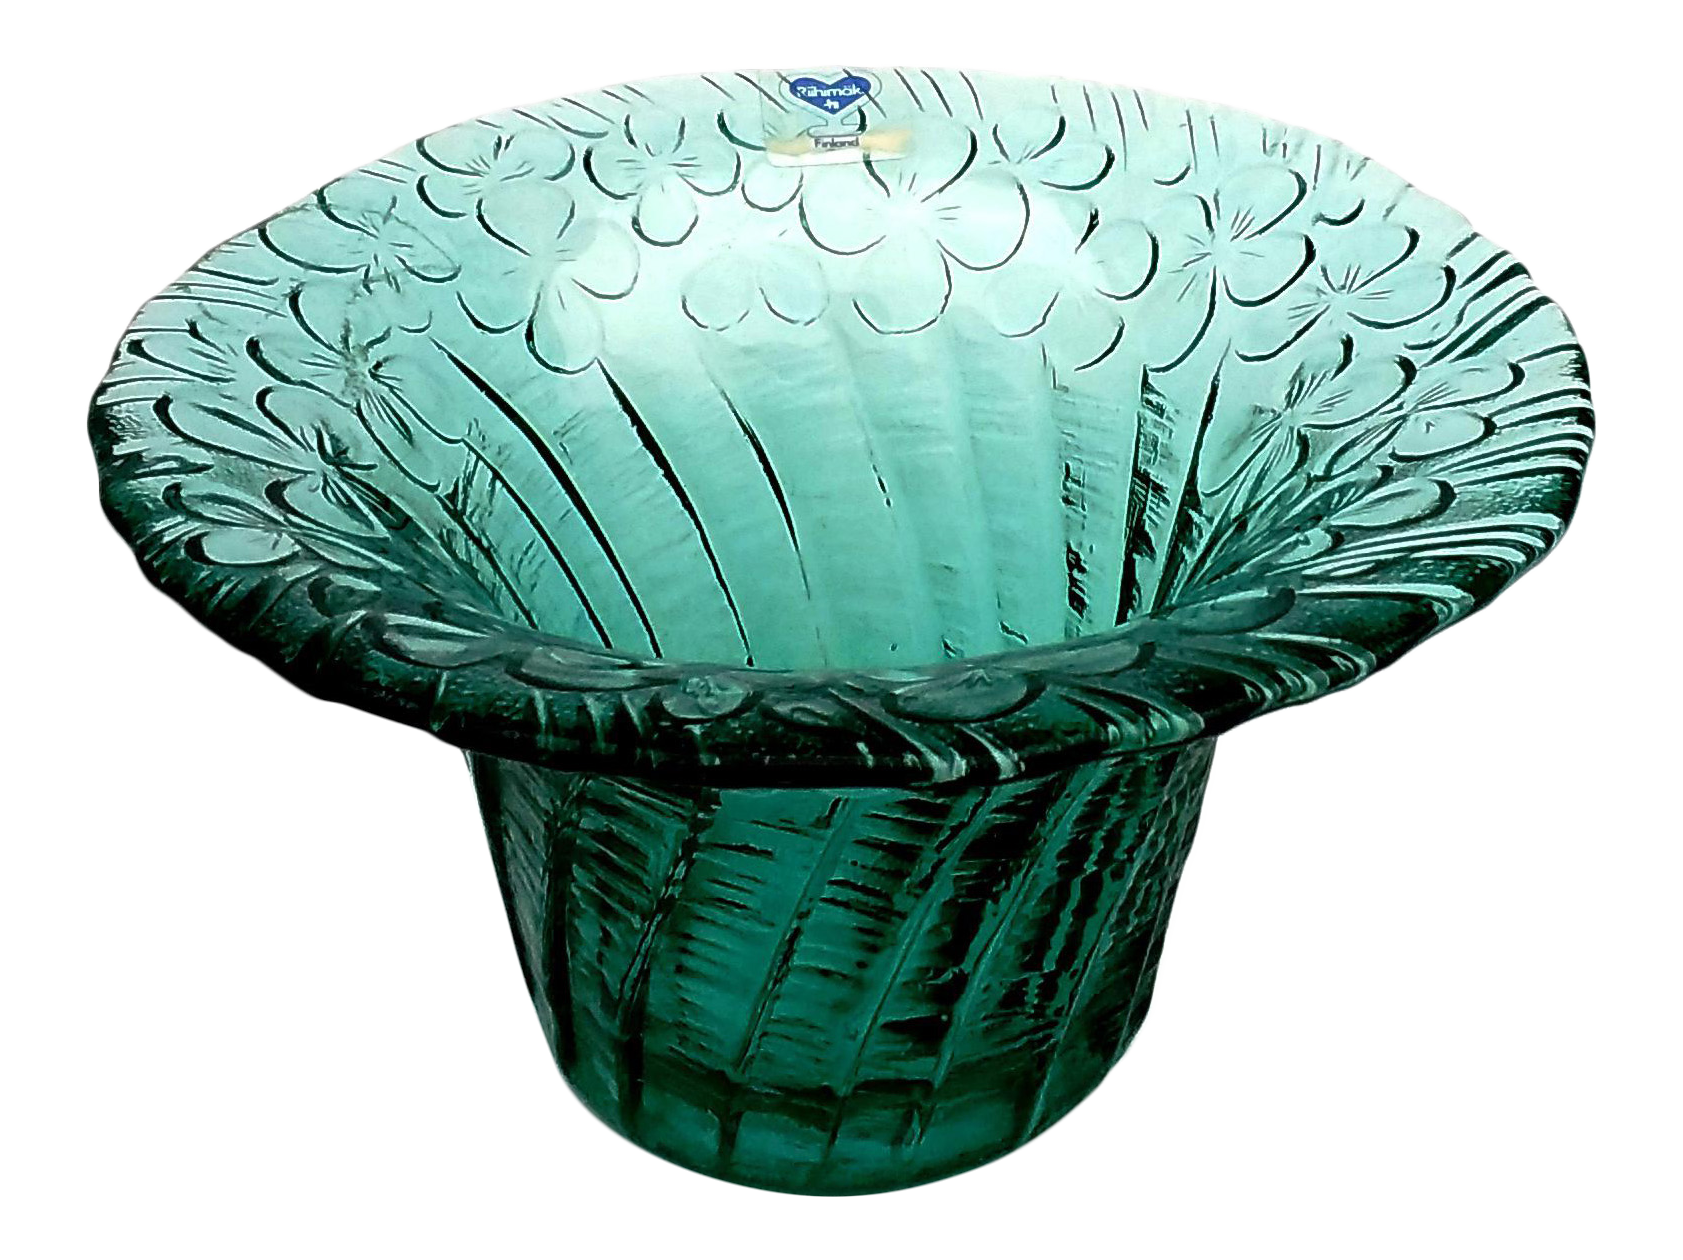 Riihimaki handblown art glass turquoise textured floral for Kitchen cabinet trends 2018 combined with hand blown glass wall art